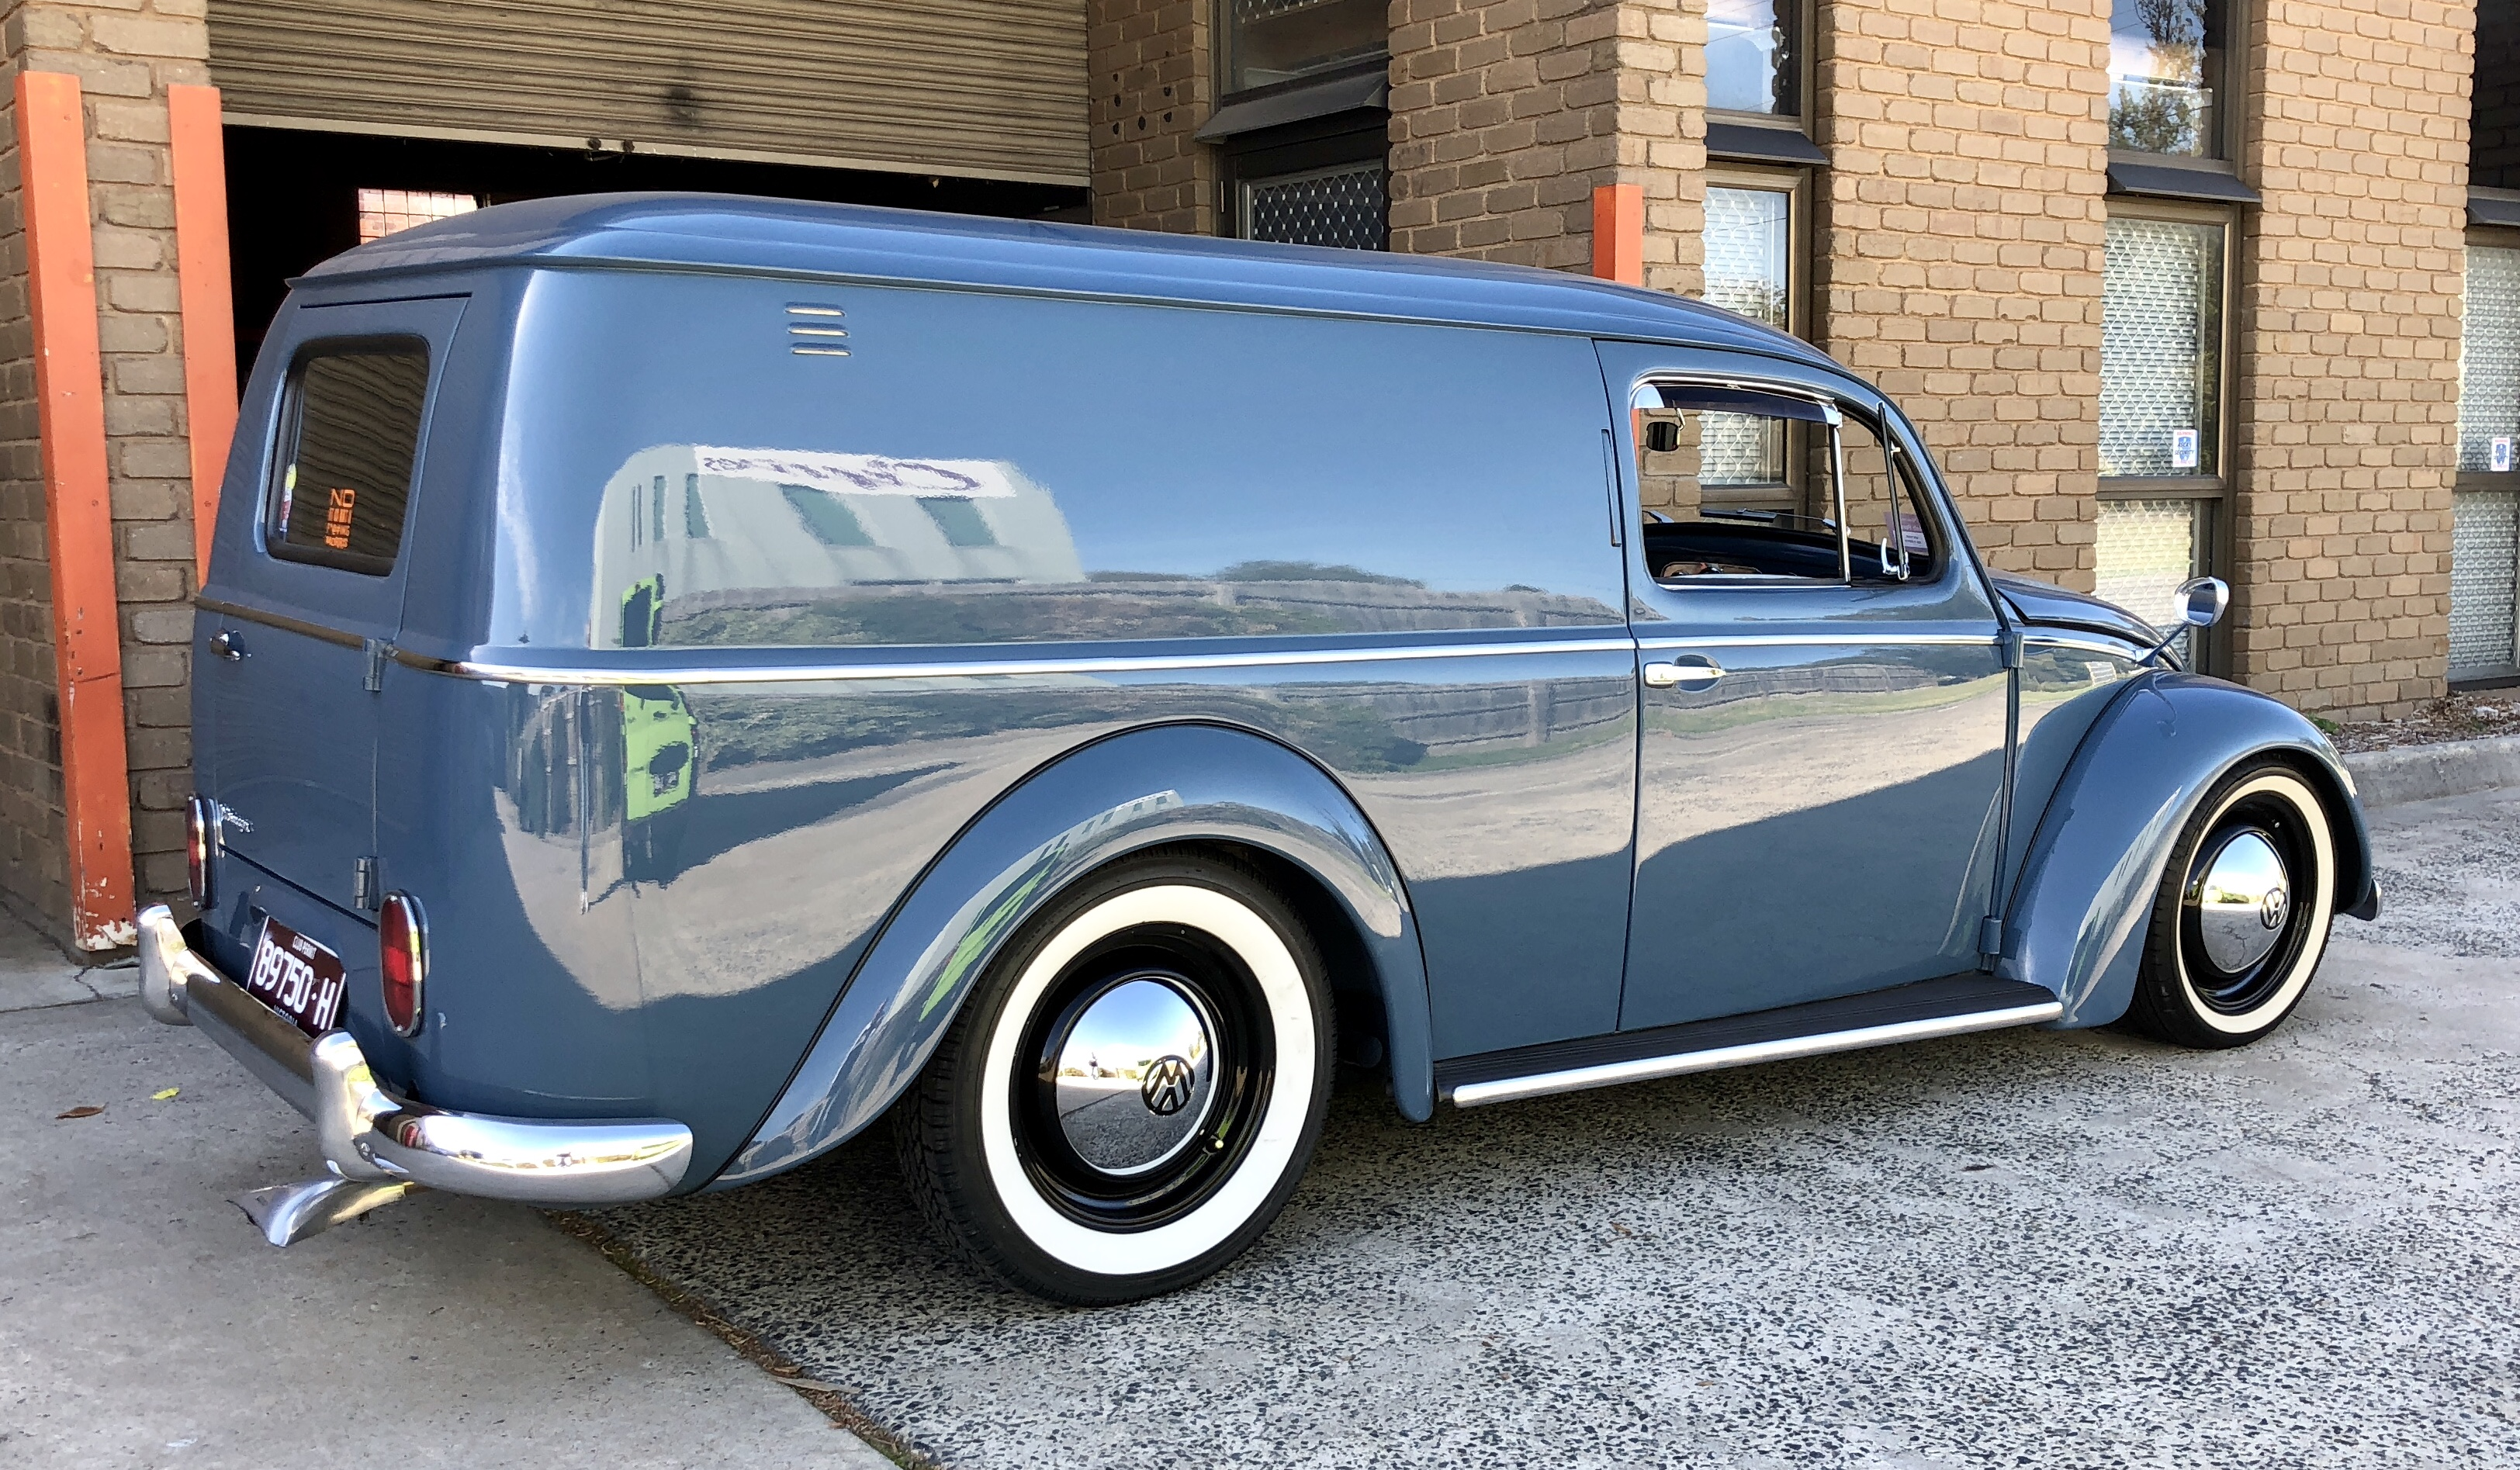 Capital Buick Gmc >> 1954 VW Beetle Panel Van – Star Cars Agency